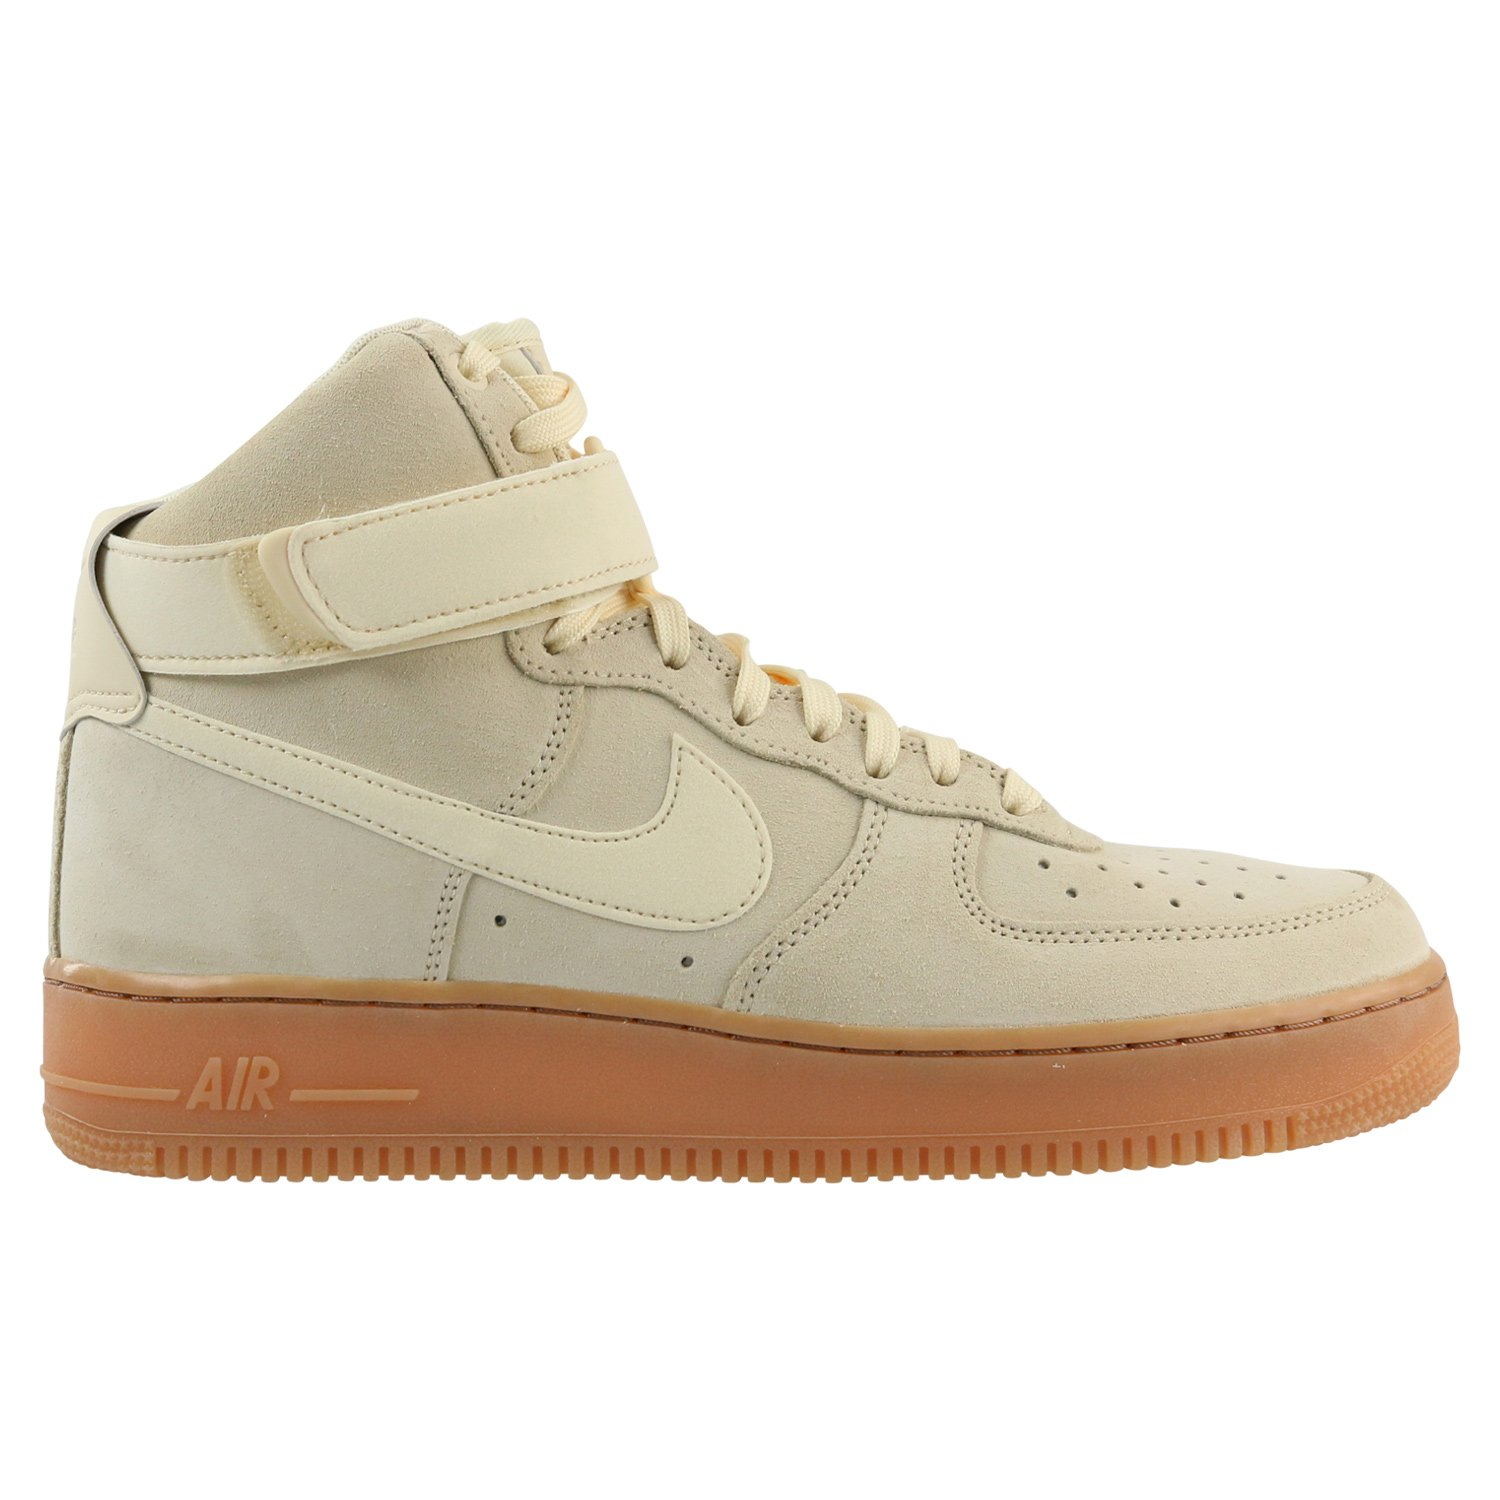 Nike Air Force 1 High '07 LV8 Suede Men's Shoes MuslinGum Medium Brown aa1118 100 (10.5 D(M) US)